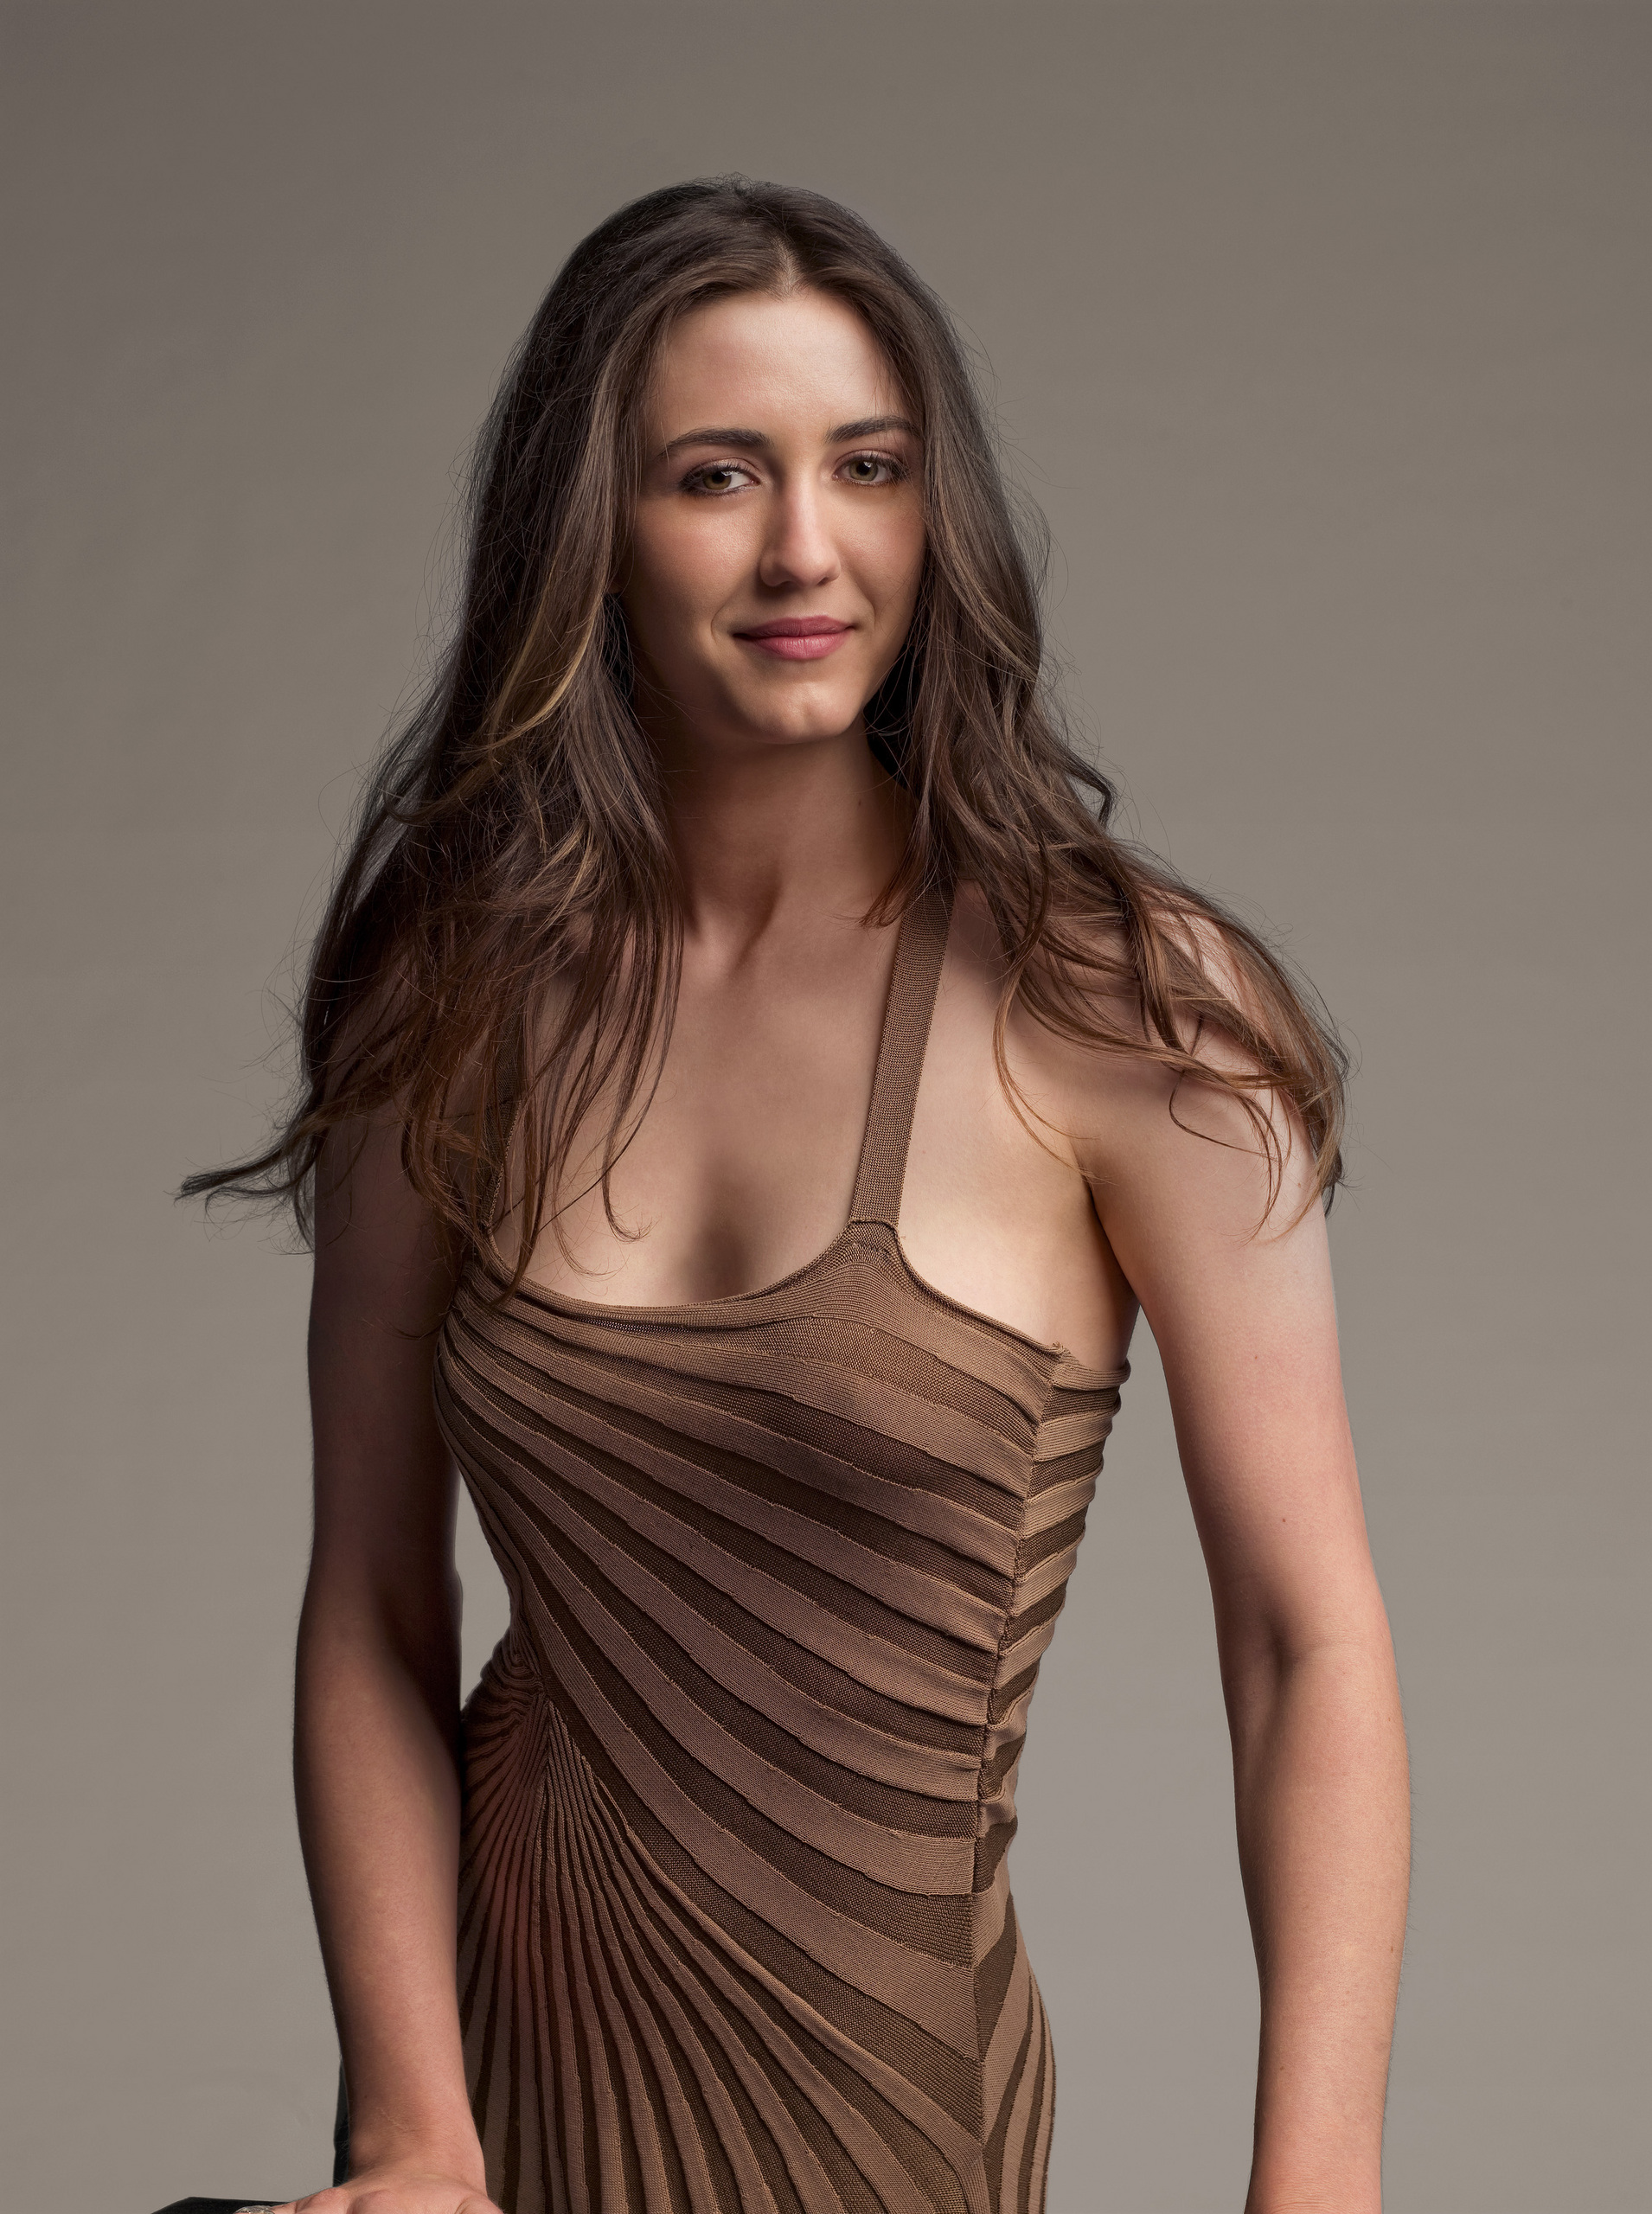 Madeline Zima as Mia Lewis